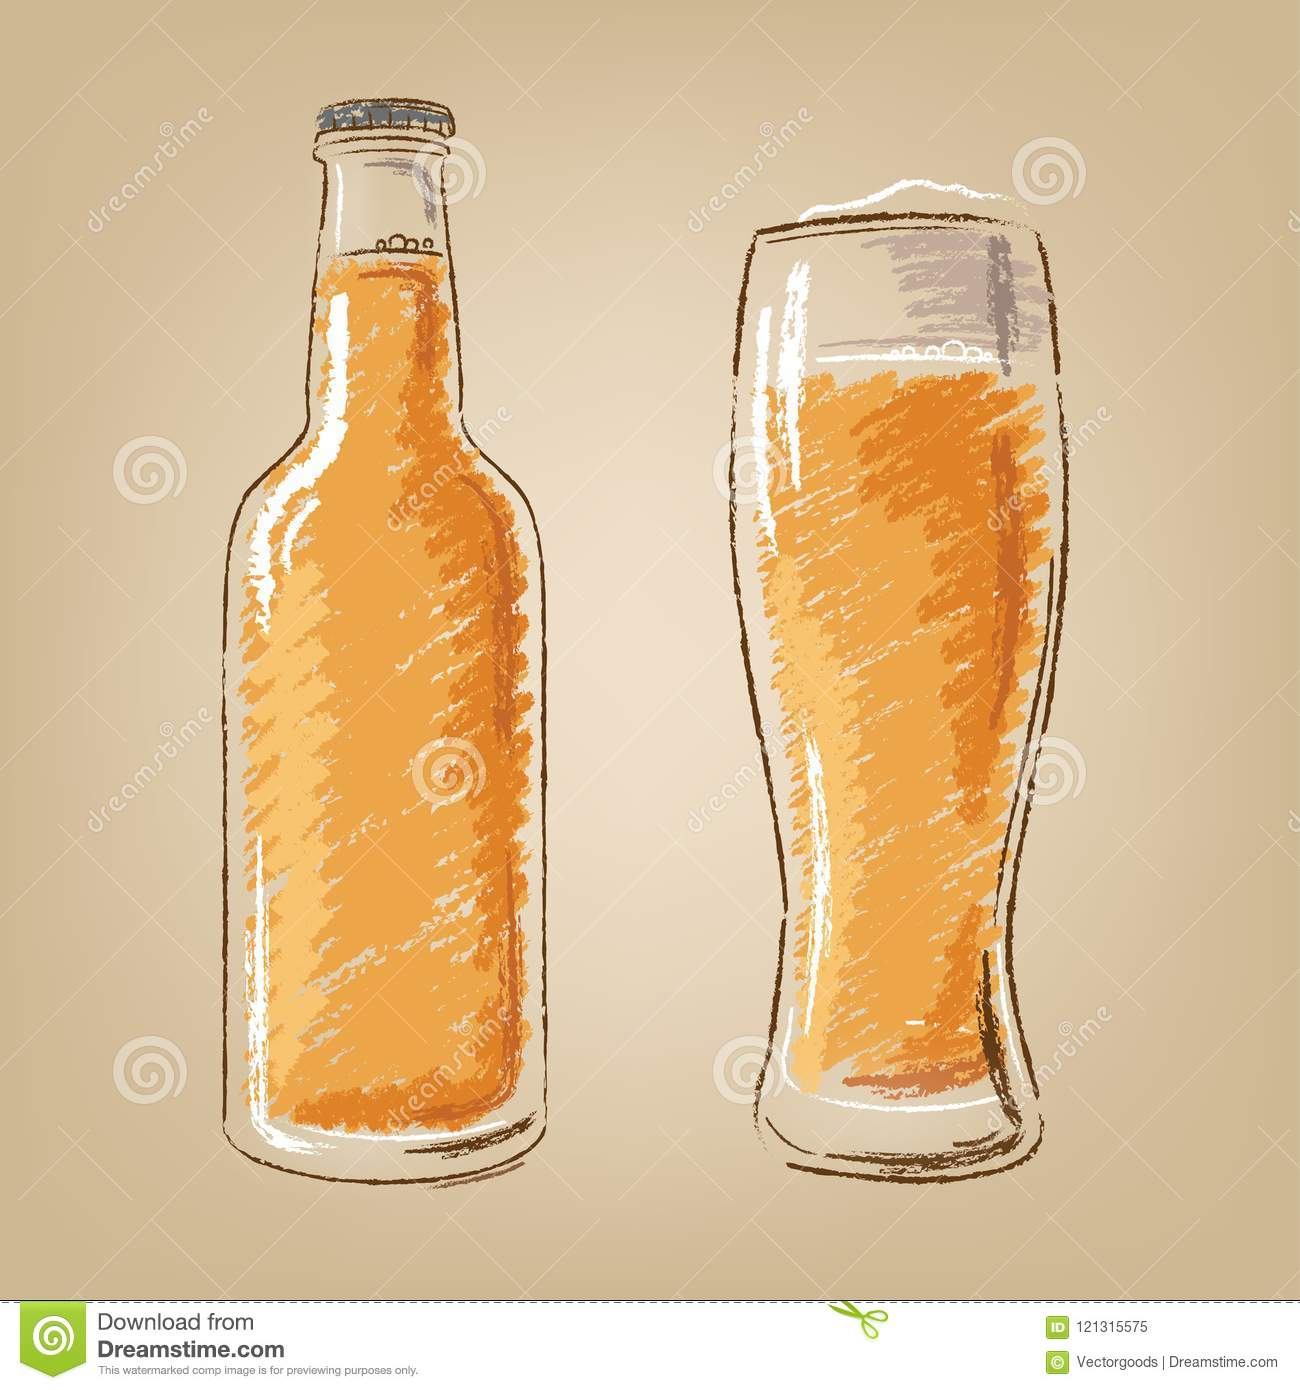 Beer bottle and glass isolated vector icons set